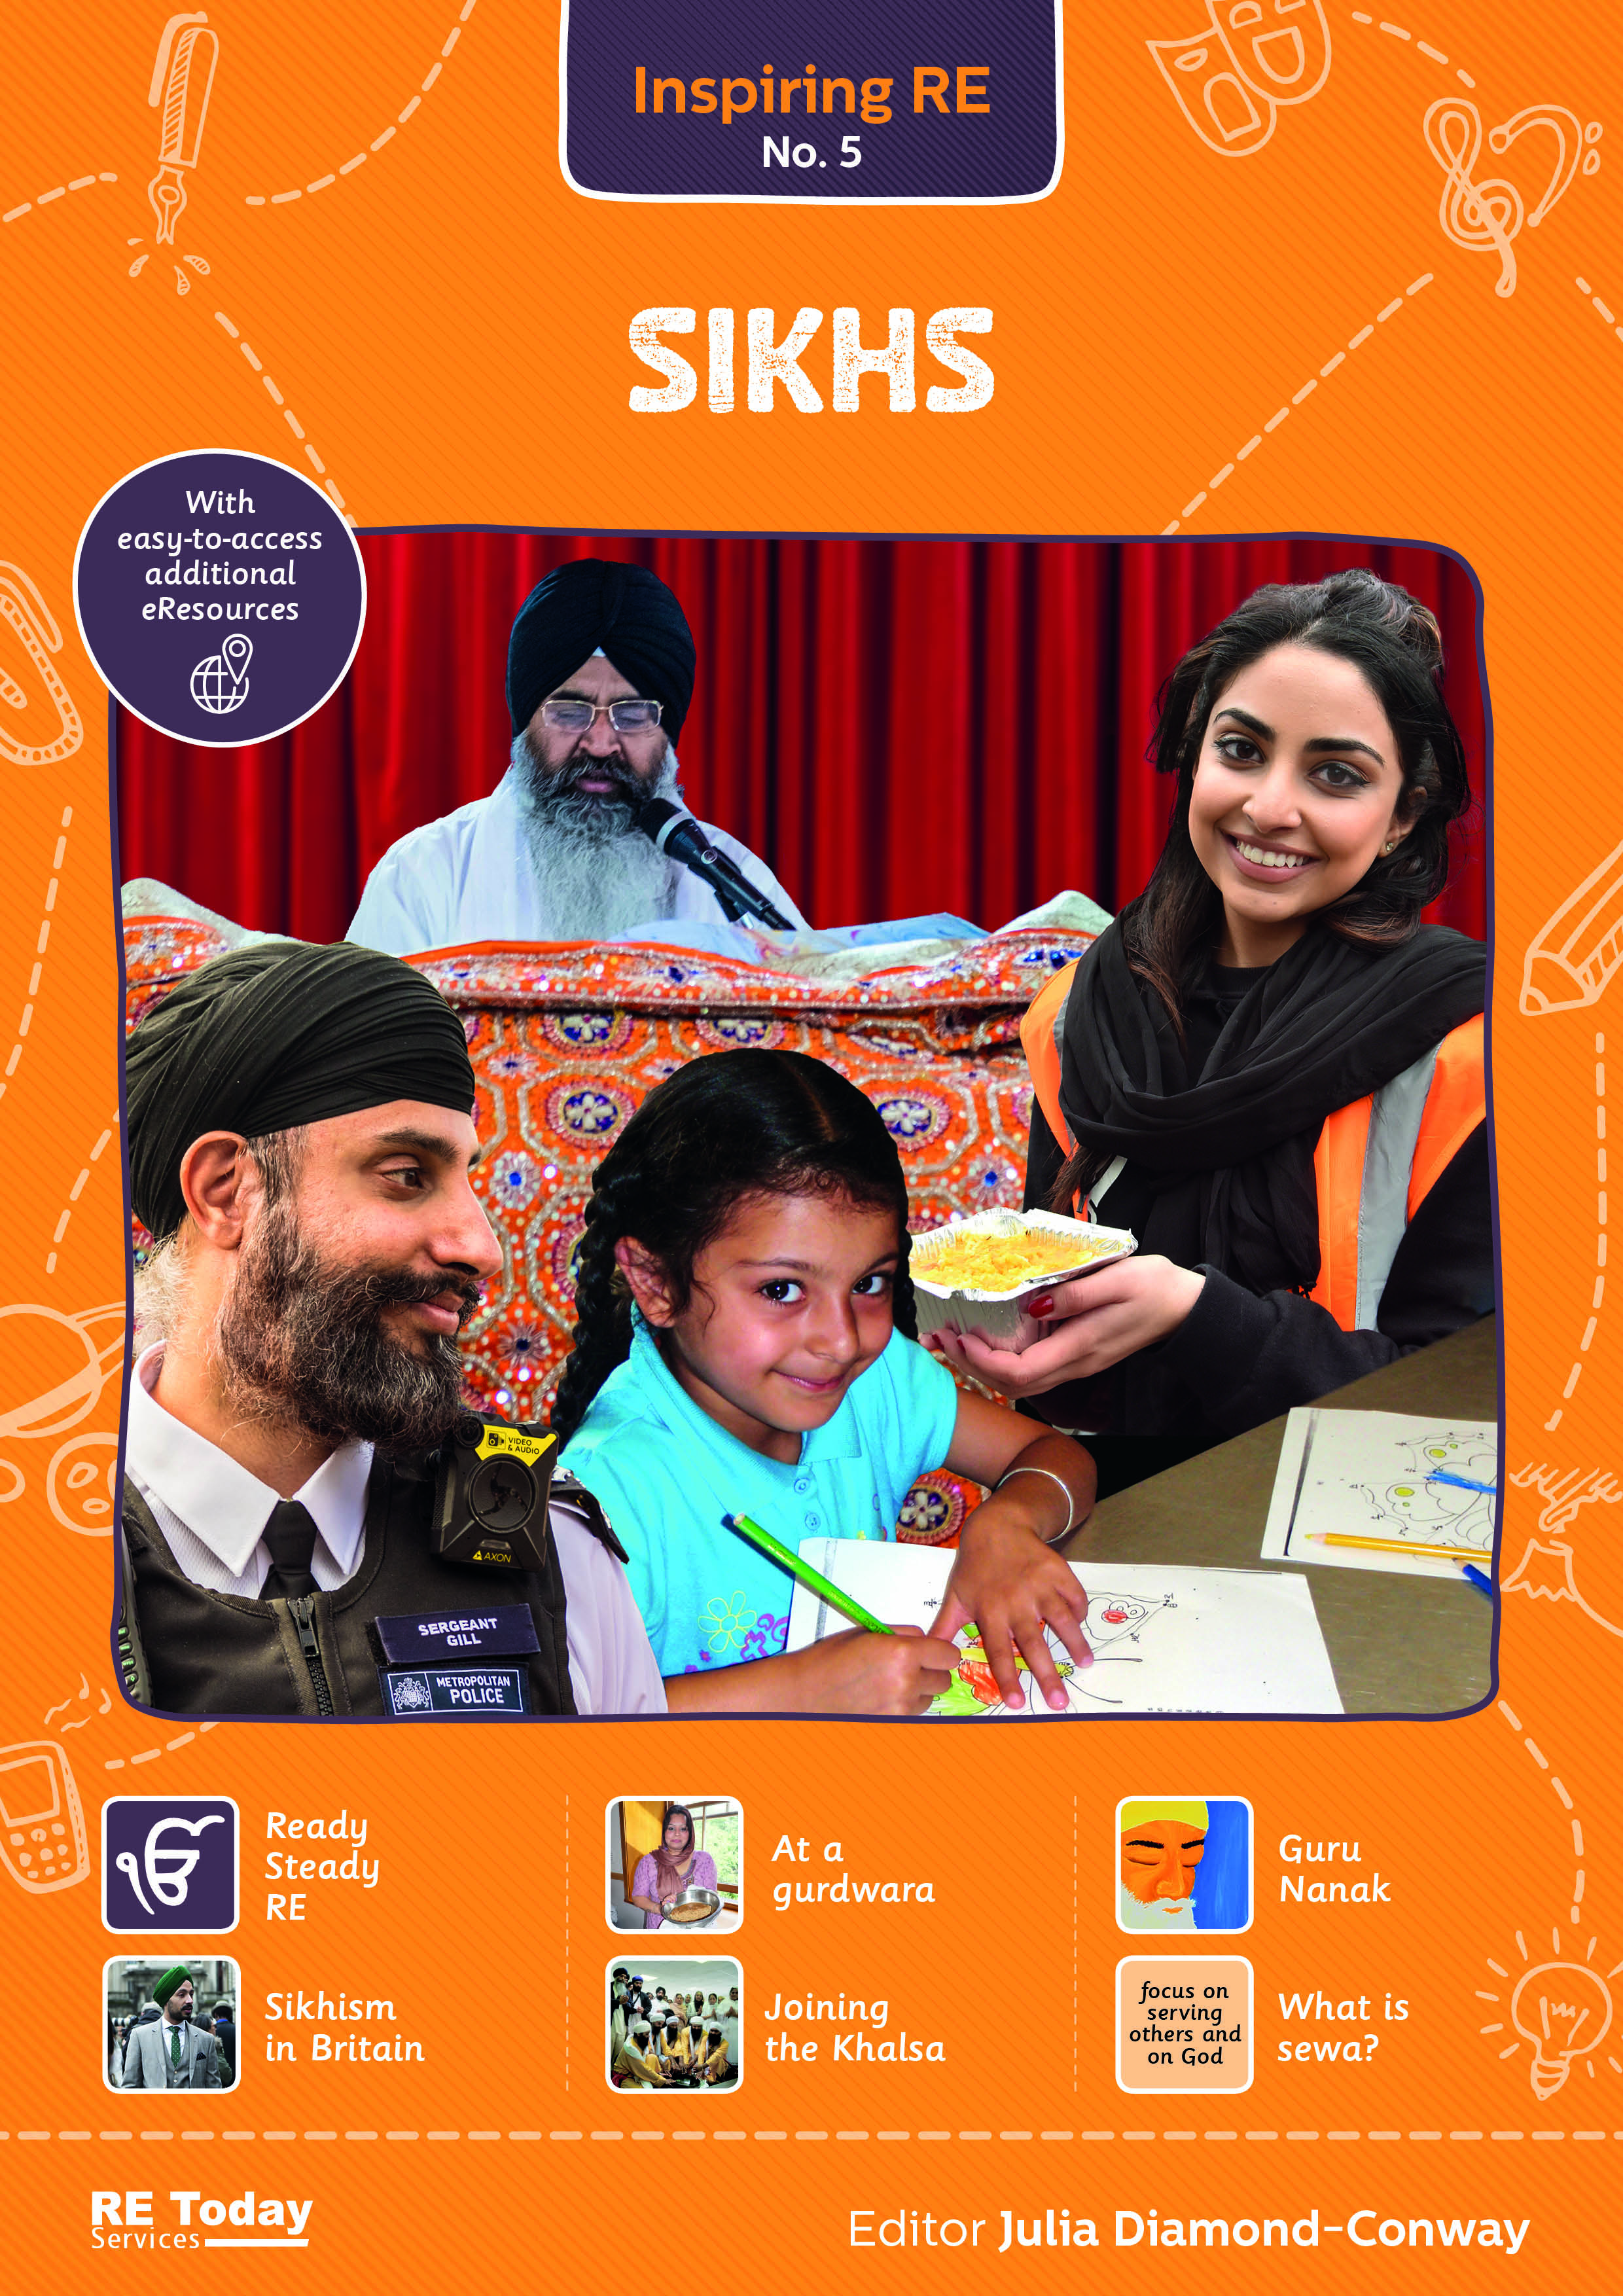 More information on Inspiring RE: Sikhs